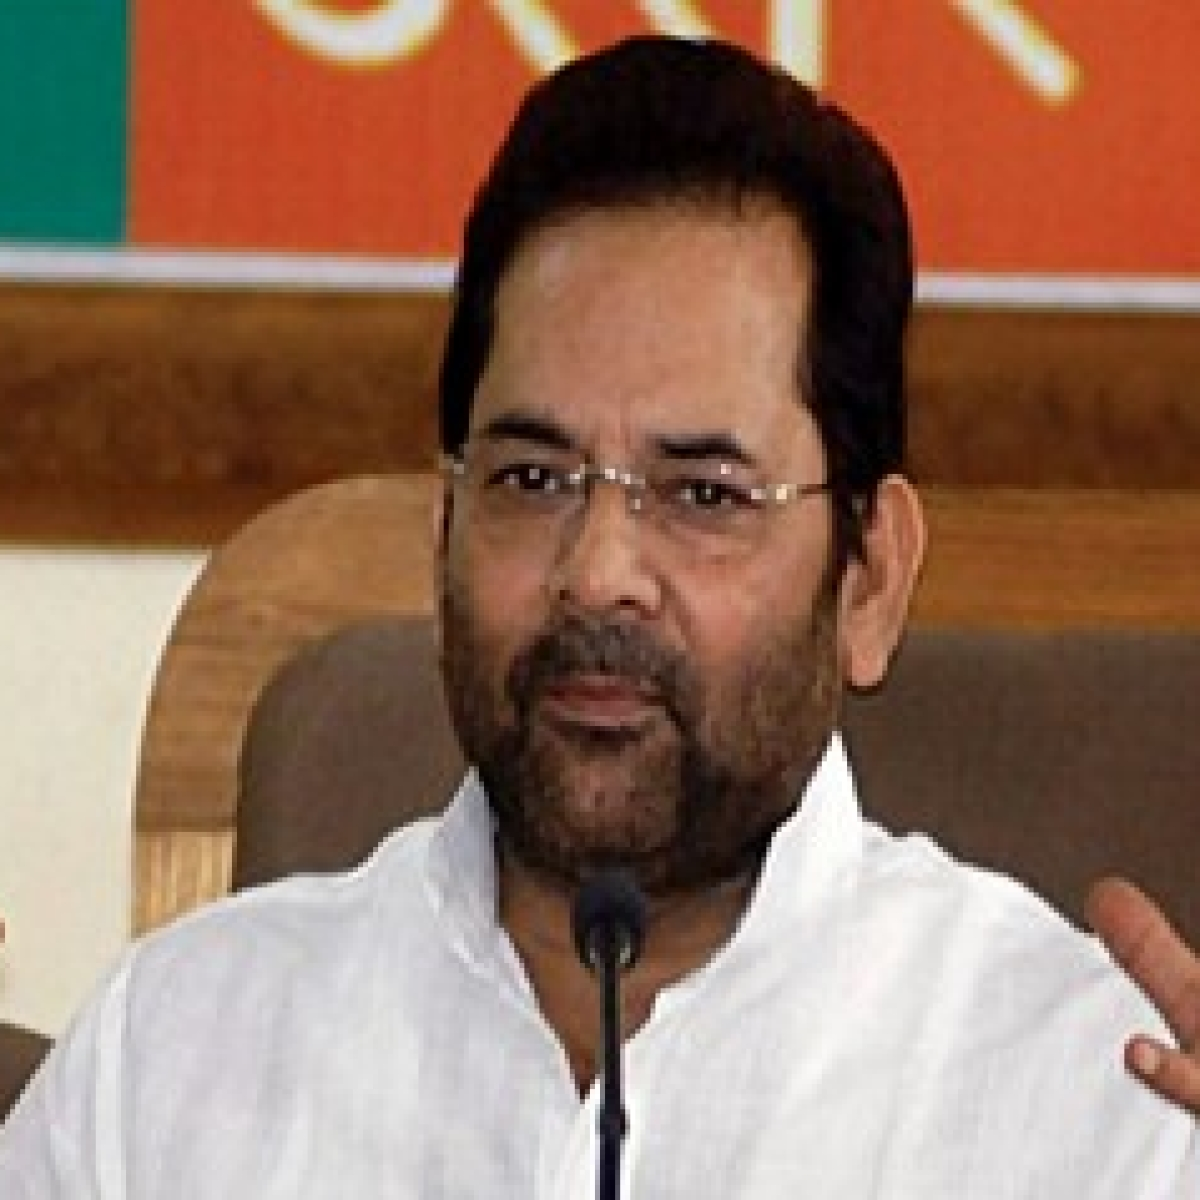 Govt's move cleared path for solving '370 problems' of J&K: Mukhtar Abbas Naqvi